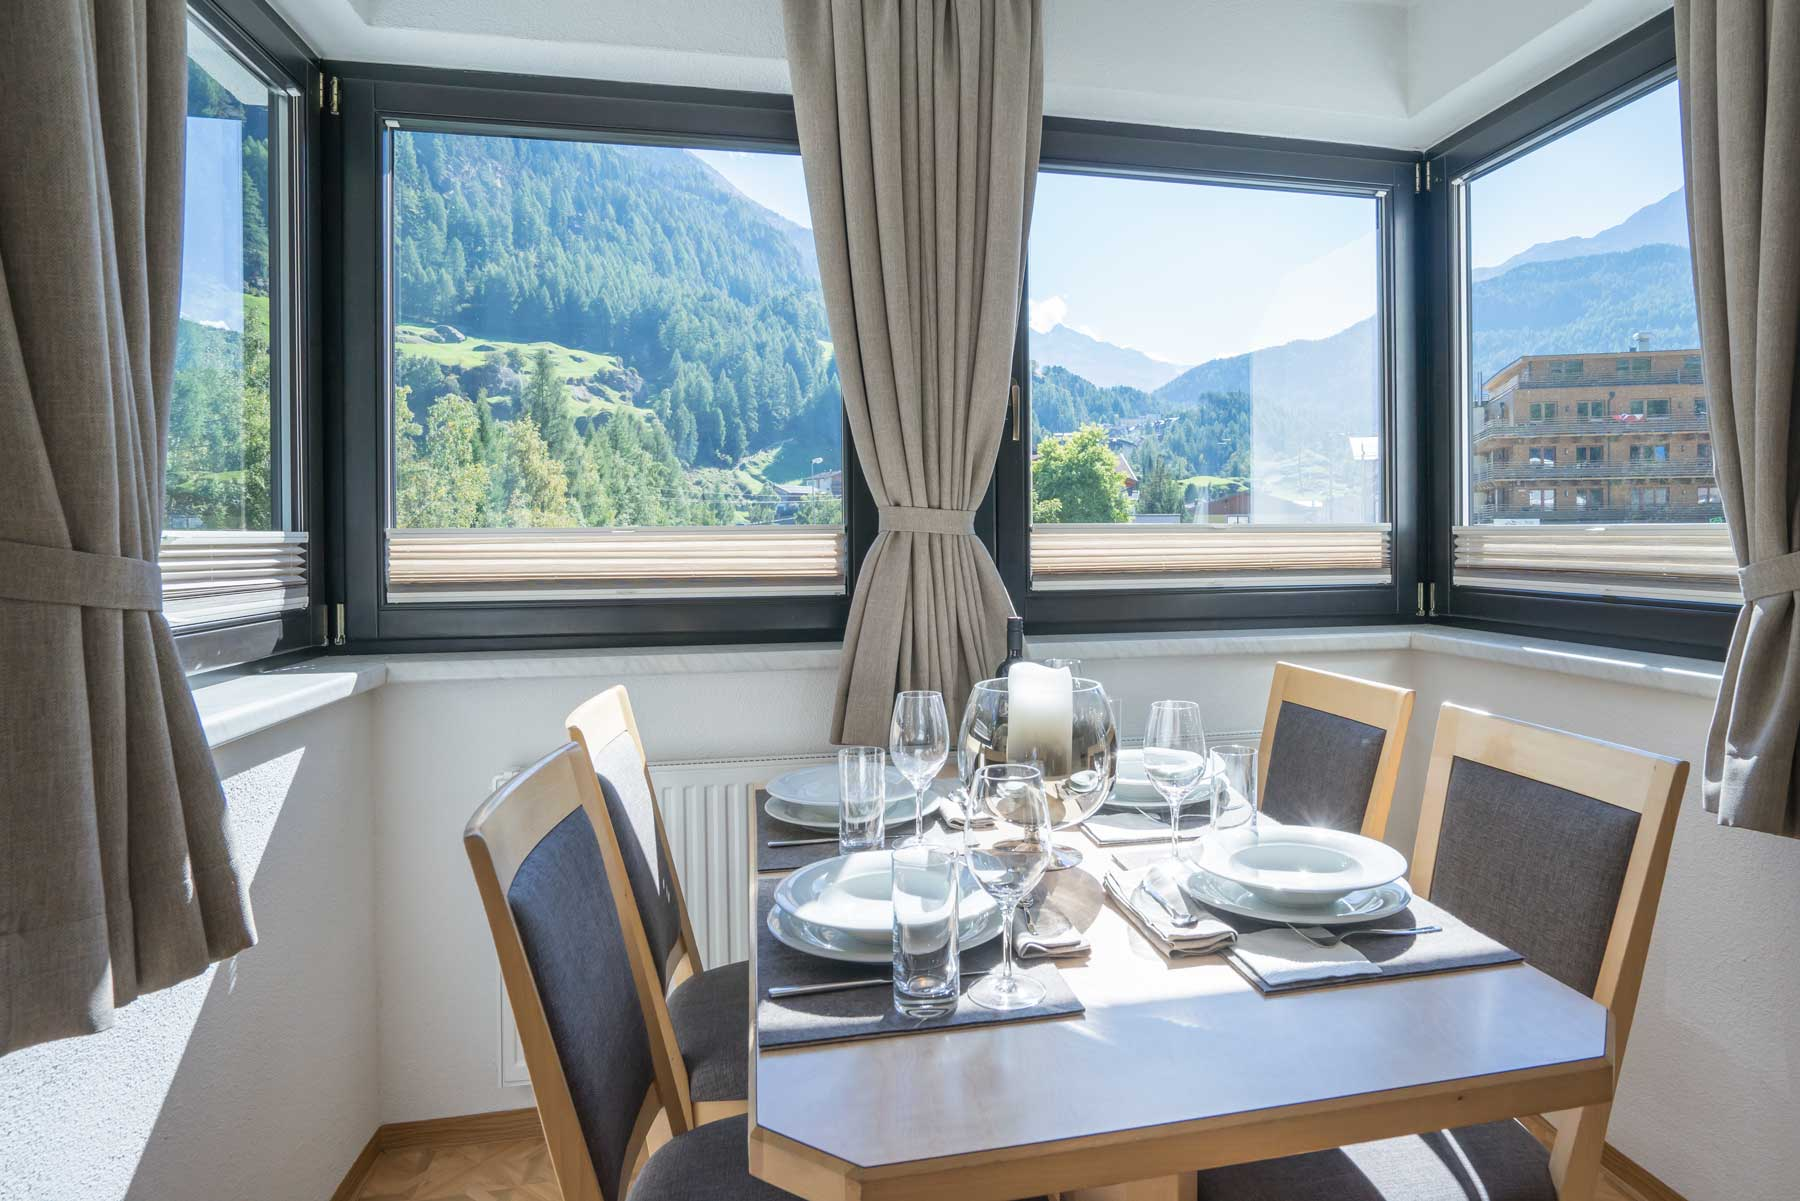 Appartement, Apartment, Sölden, Soelden, Solden